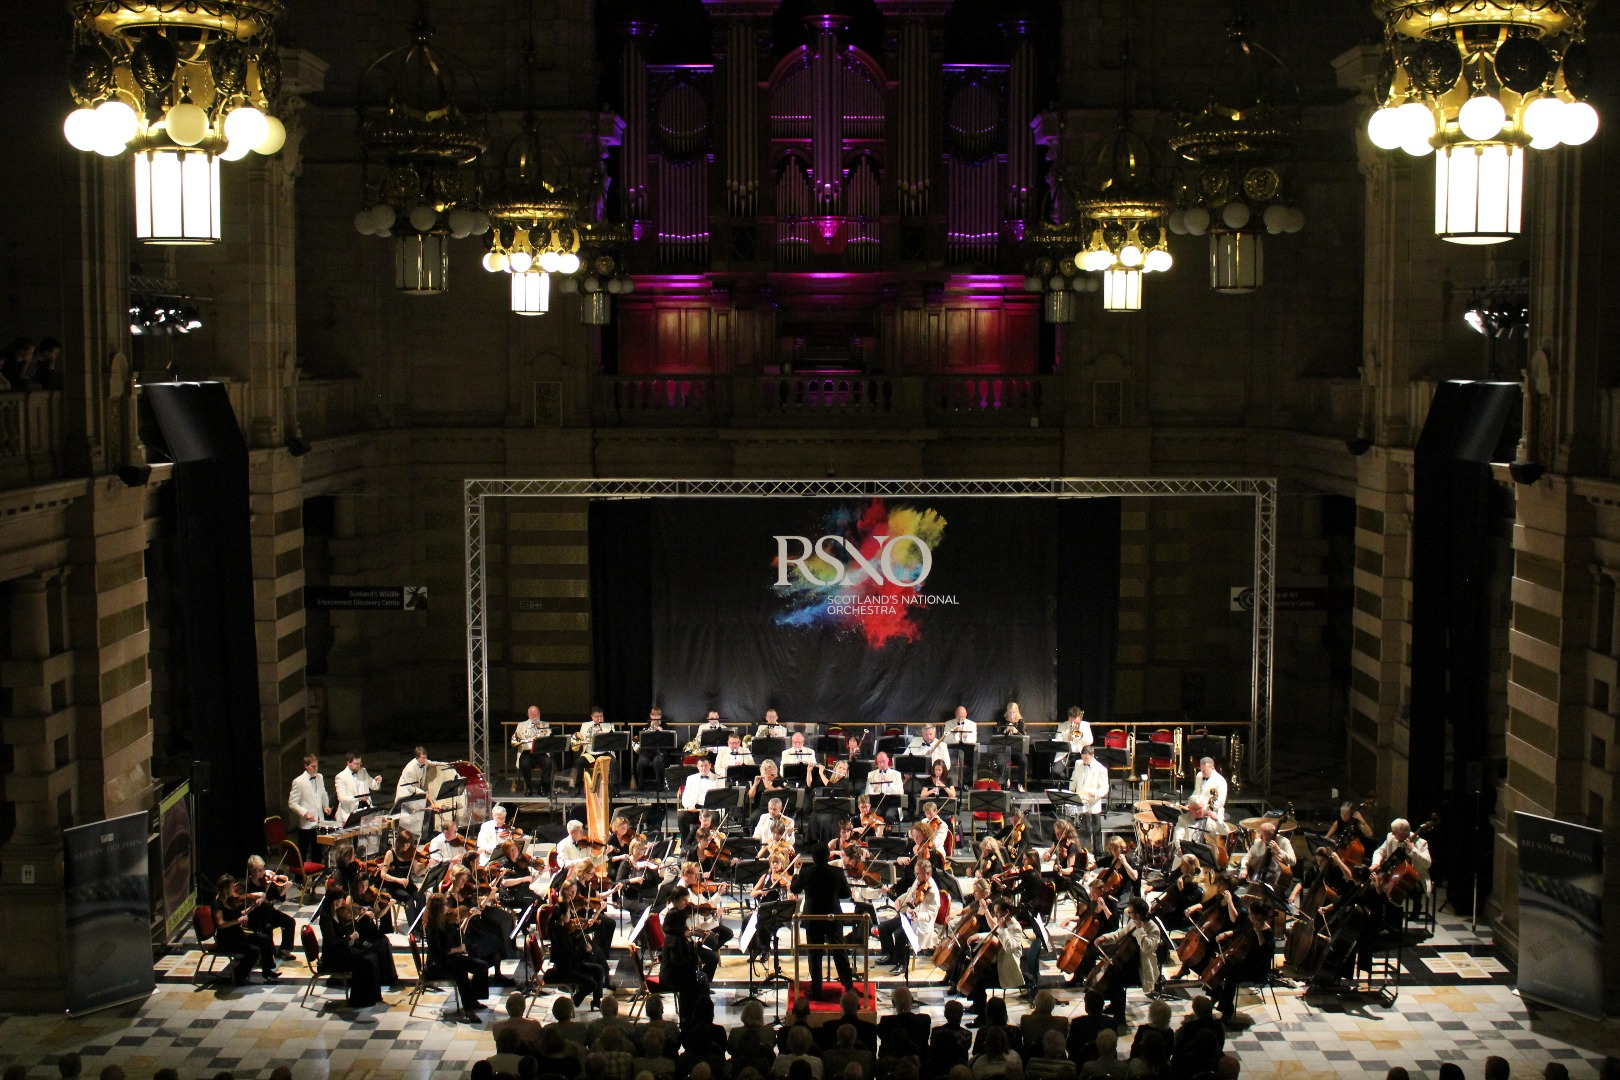 National orchestra to 'take over' Paisley for culture bid